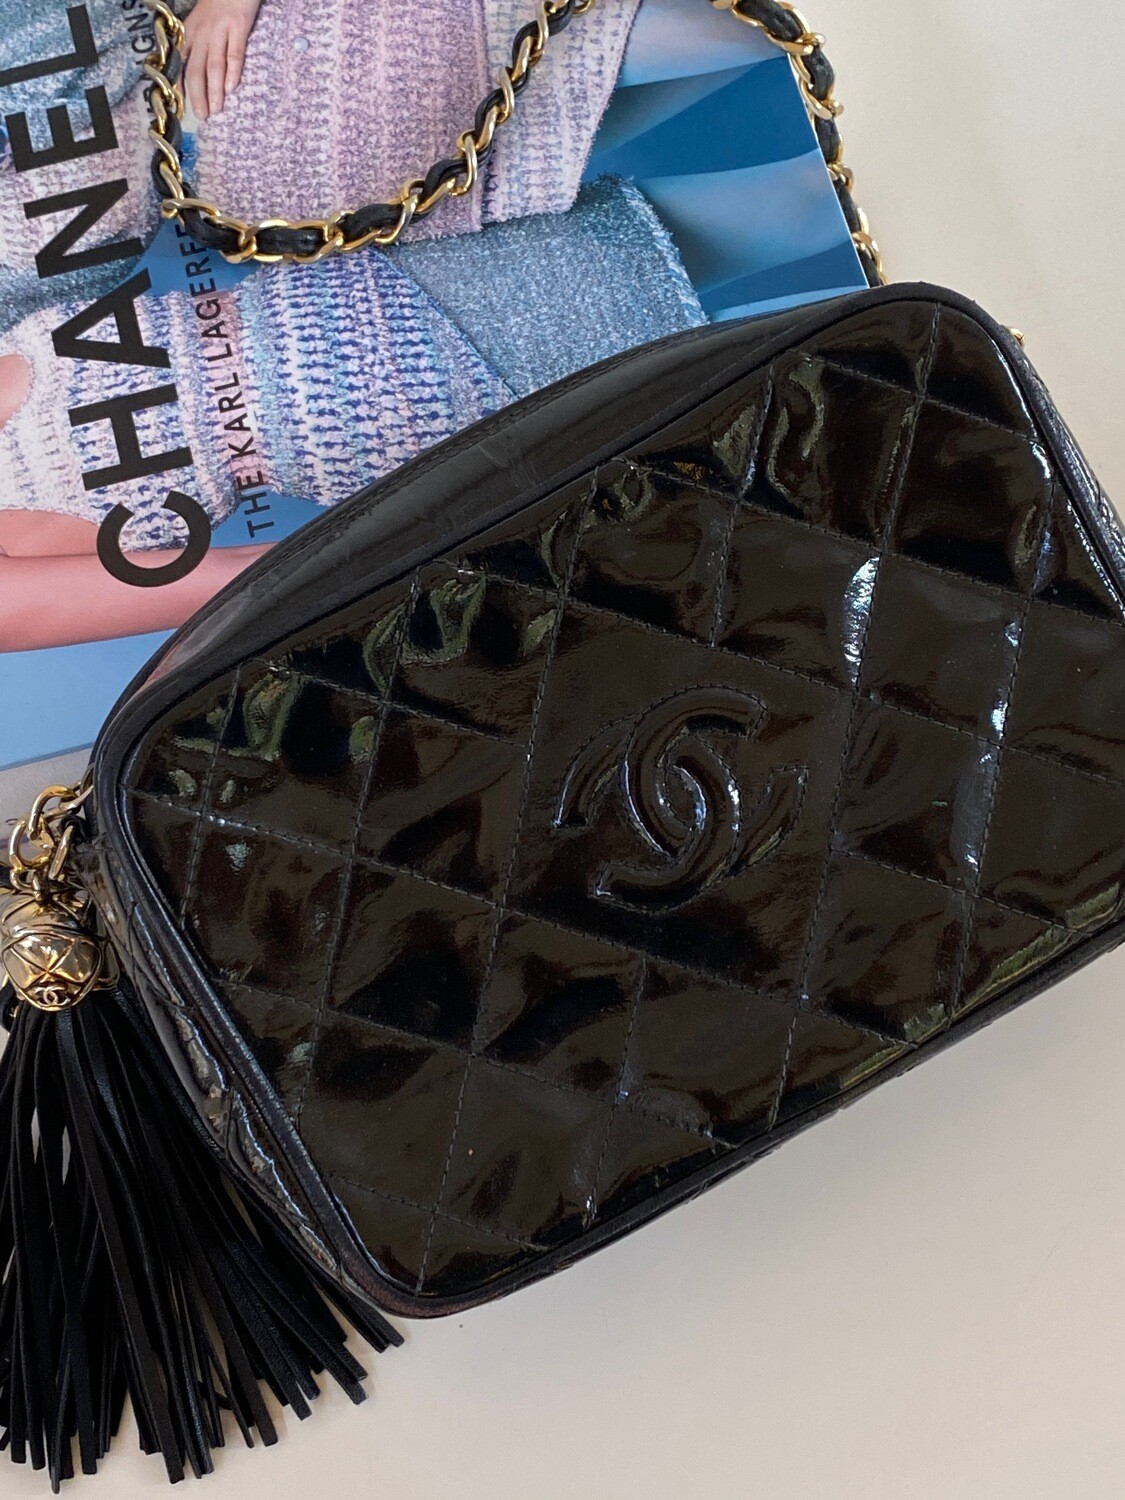 Vintage CHANEL CC Logo Matelasse Quilted Black Patent Leather Chain CROSSBODY Camera Bag Clutch Purse Bag with fringe tassel